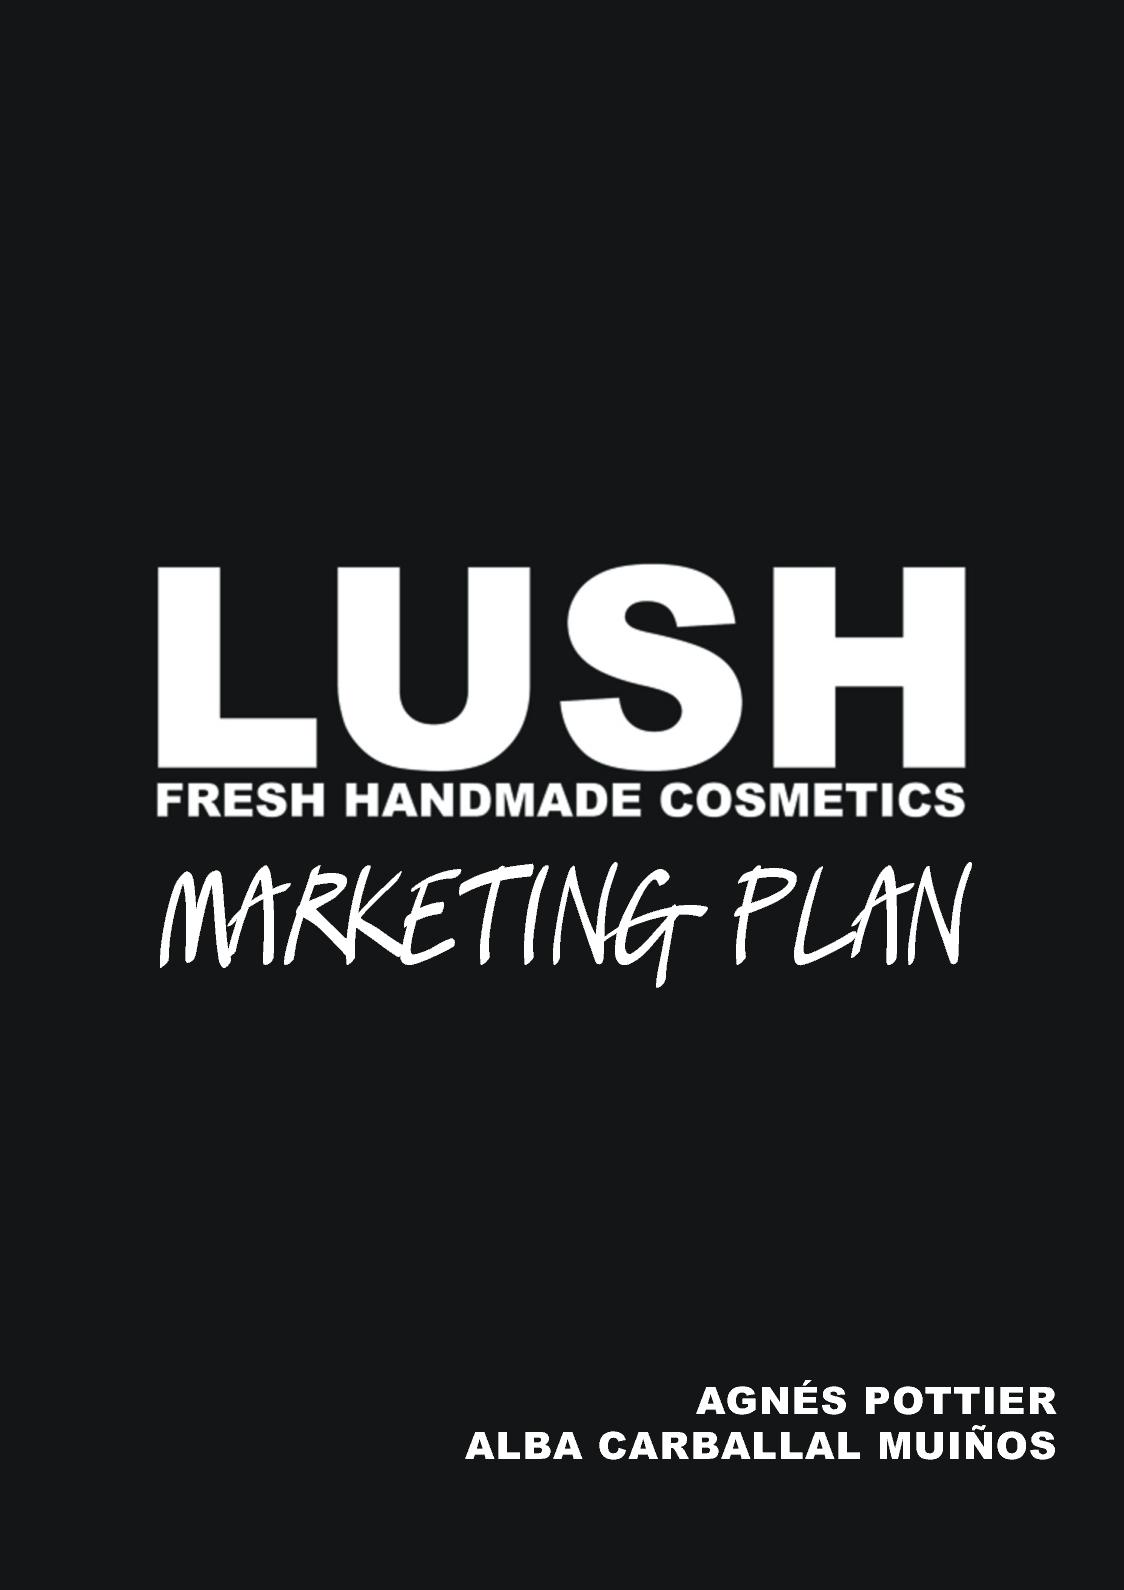 3c9505d20 Calaméo - Lush Marketing Plan